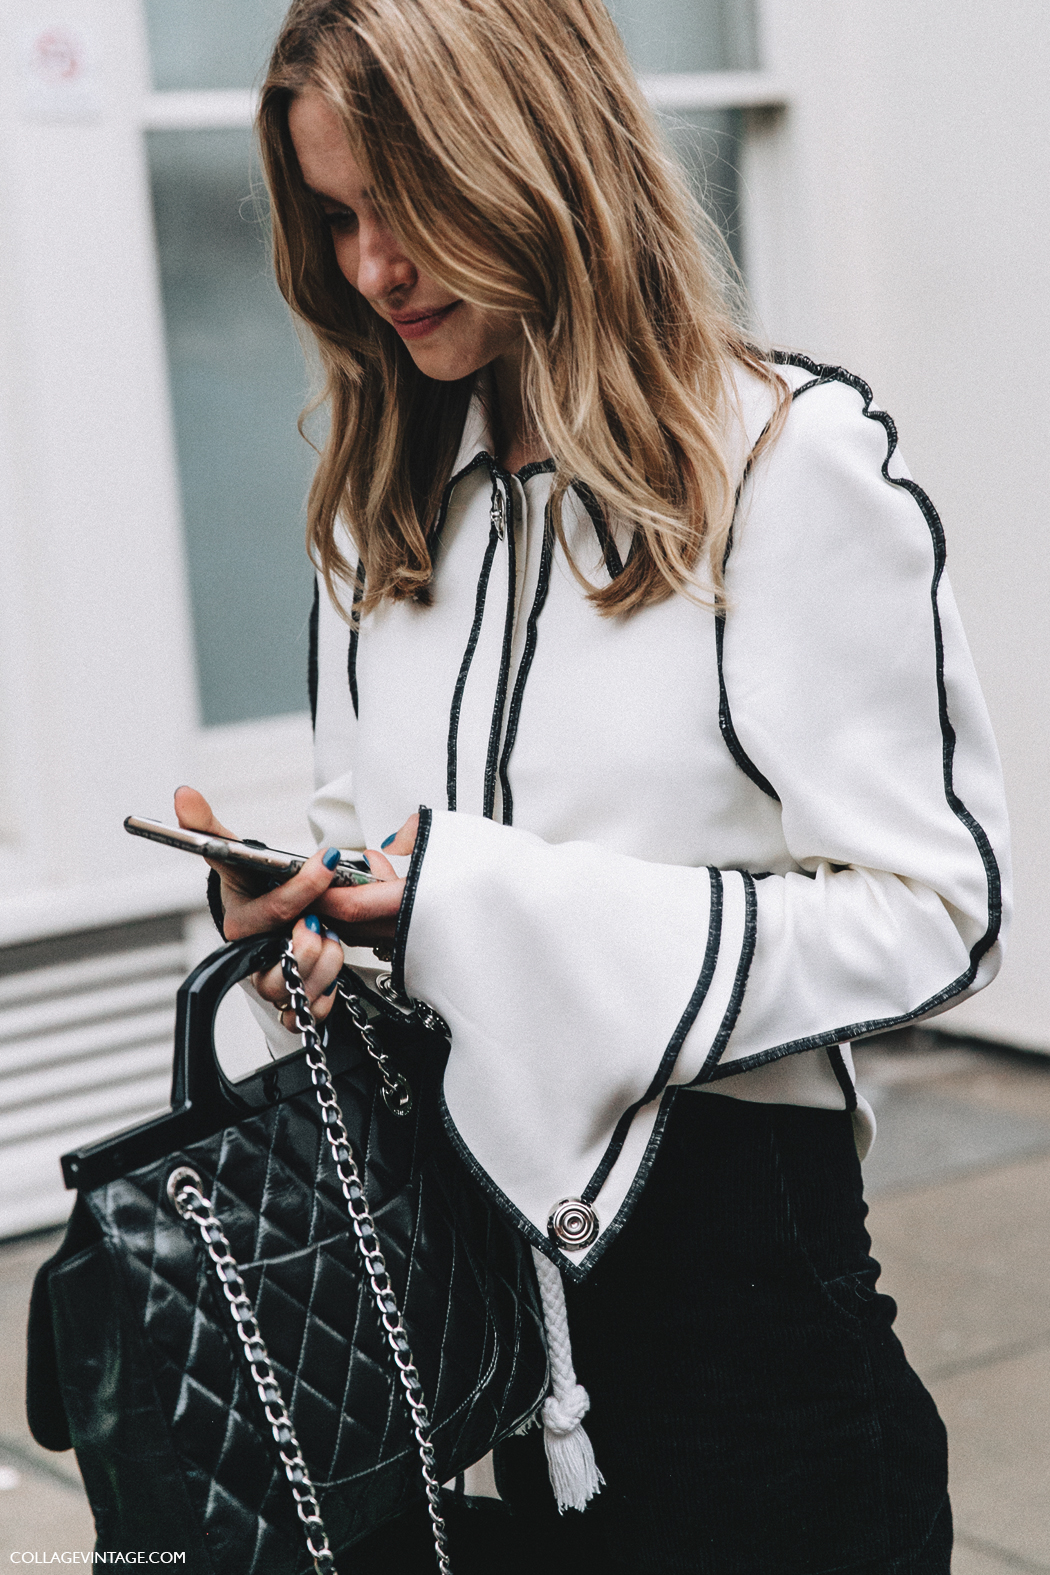 LFW-London_Fashion_Week_Fall_16-Street_Style-Collage_Vintage-Pernille_Teisbaek-JW_Anderson-Black_And_White-Big_Sleeves-Chanel_Bag-8